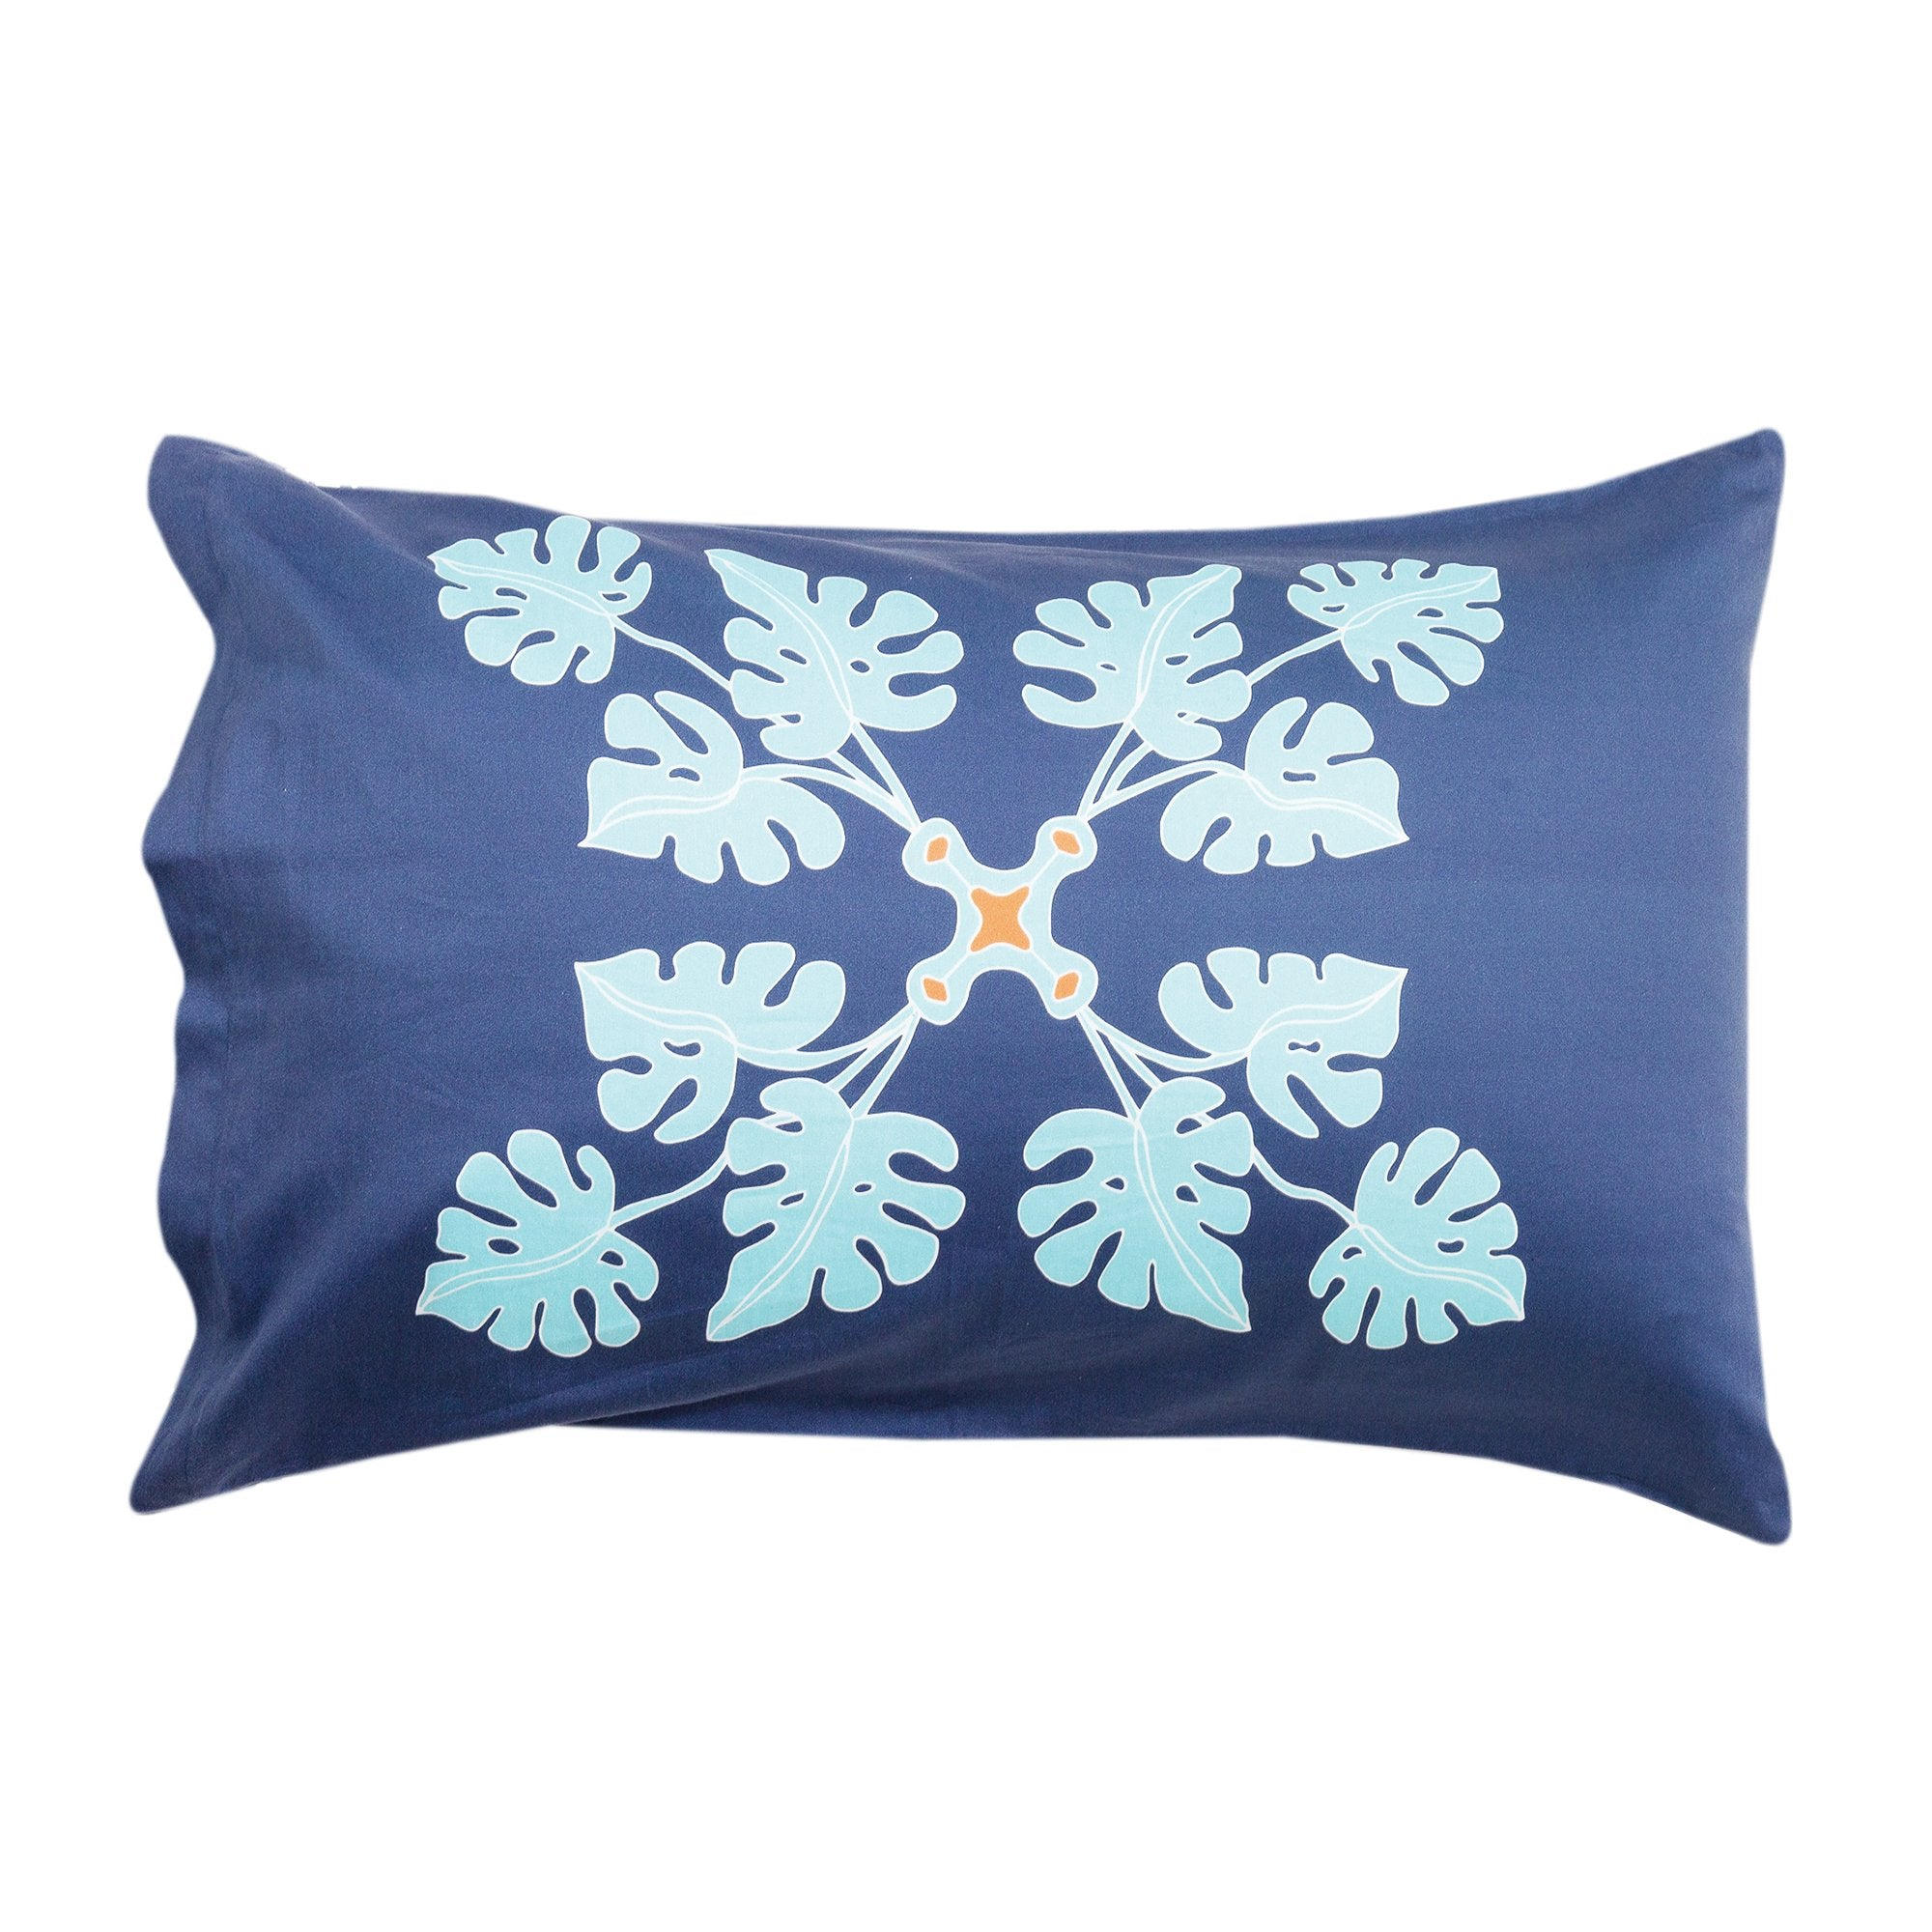 Kikau's Pacific Ocean Blue kids pillowcase on white background